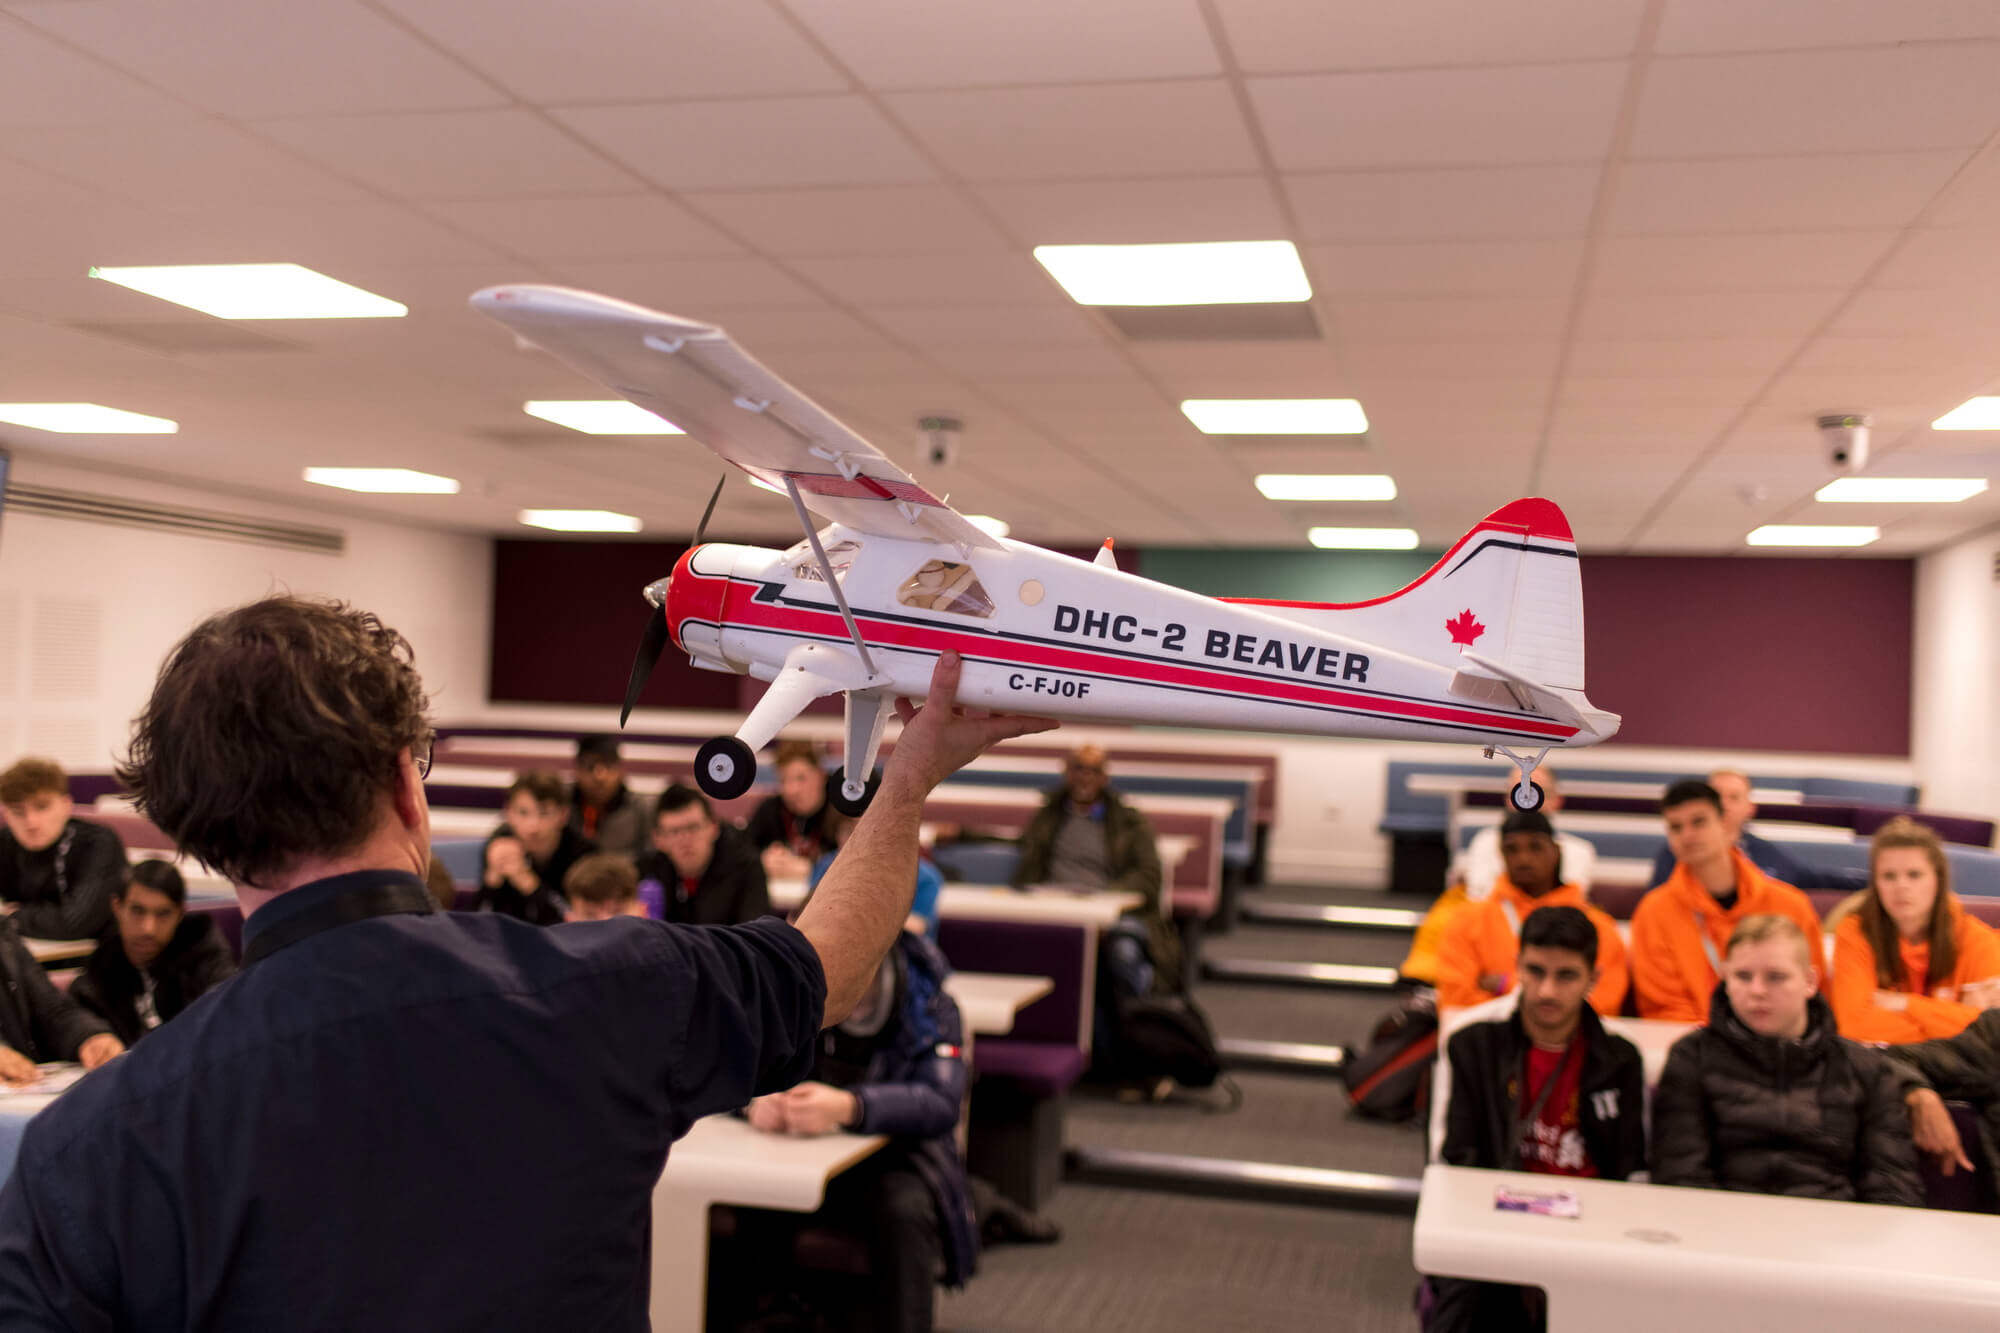 A lecturer holding a model plane in front of a lecture theatre of students.